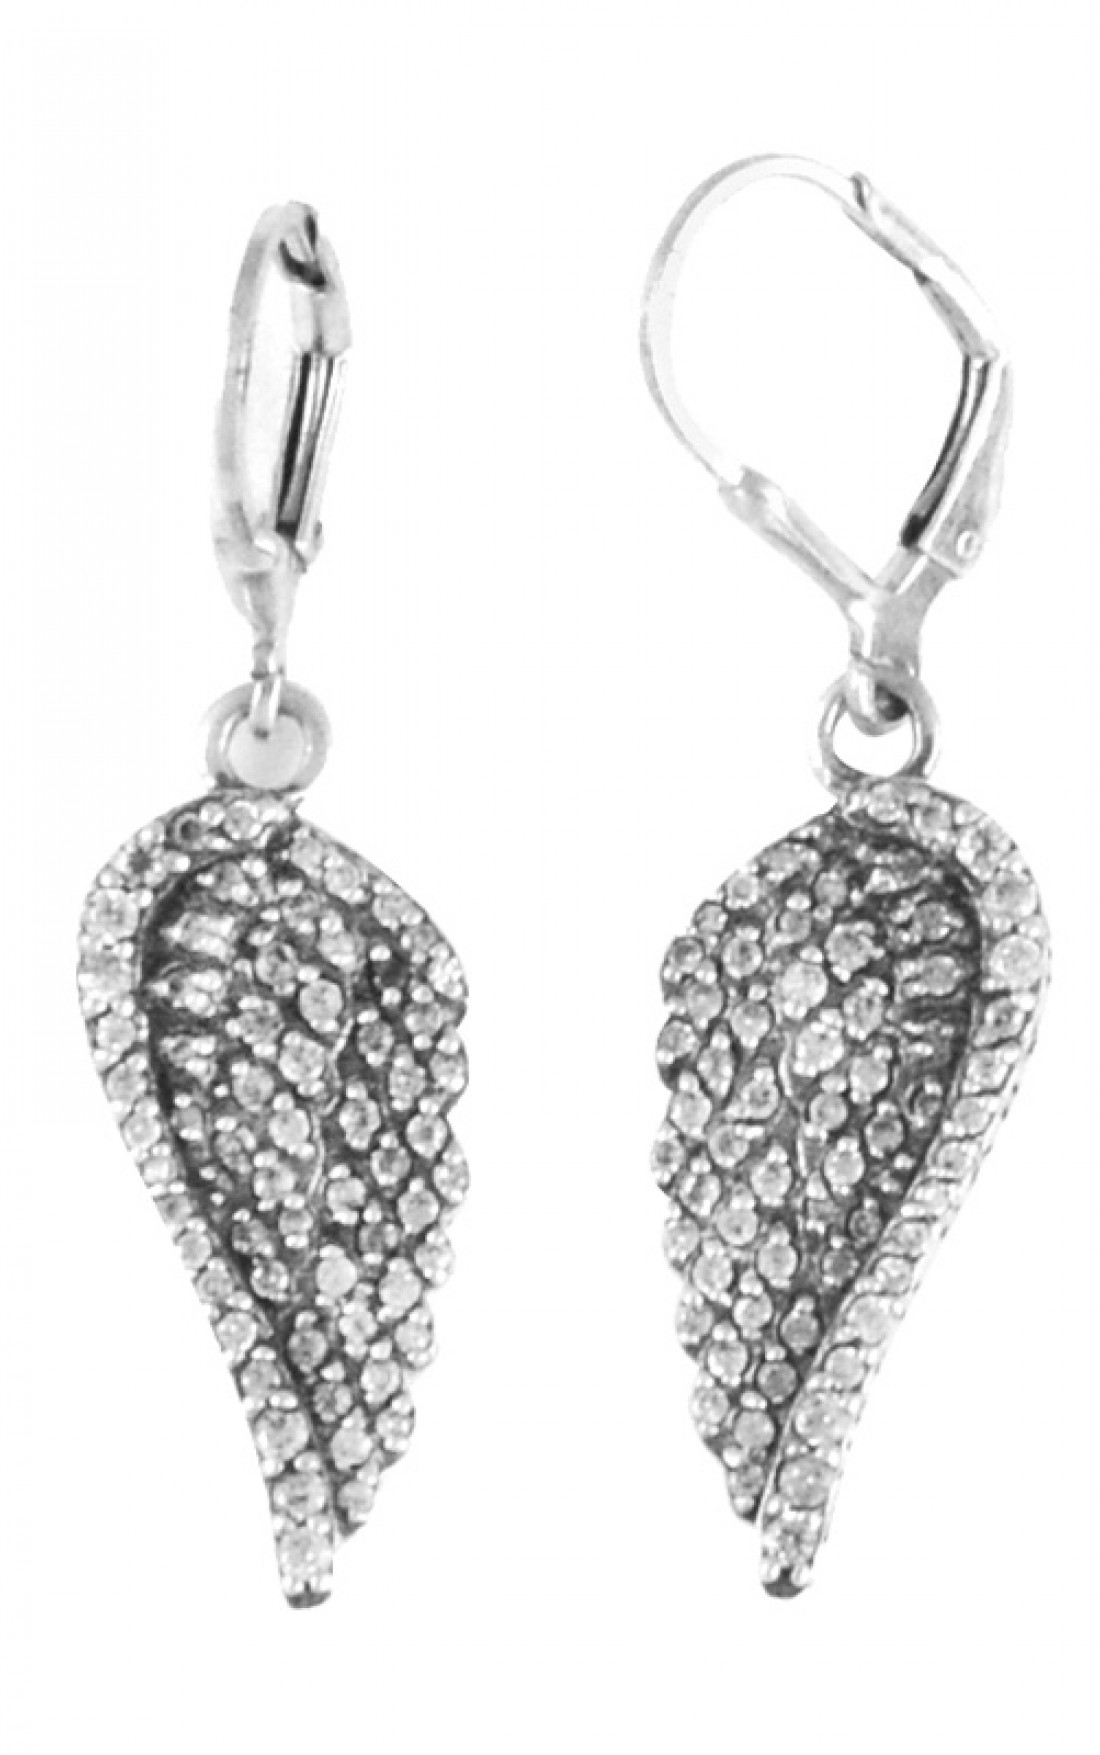 Queen Baby Small Cz Pave Wing Leverback Earrings